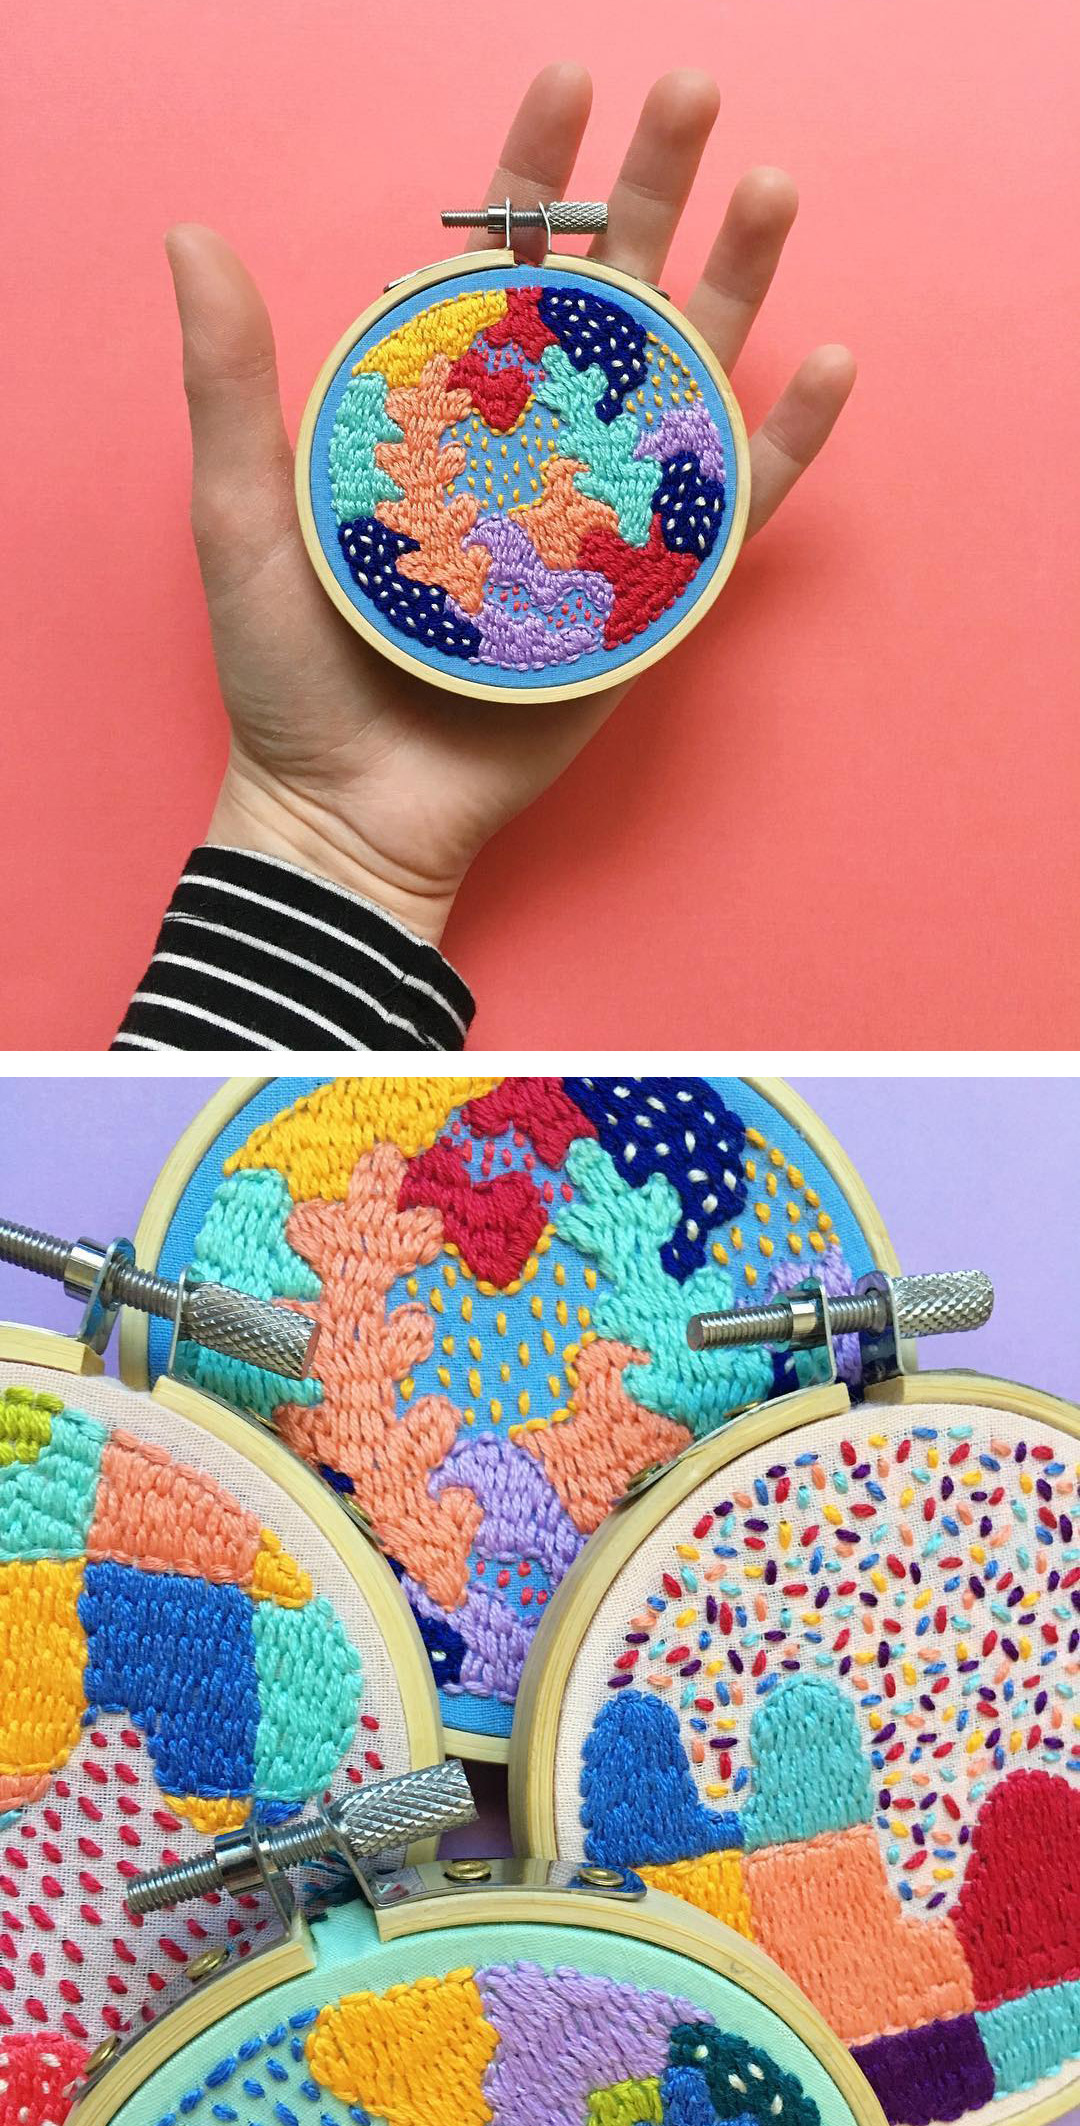 Colorful contemporary embroidery by Kelly Ryan